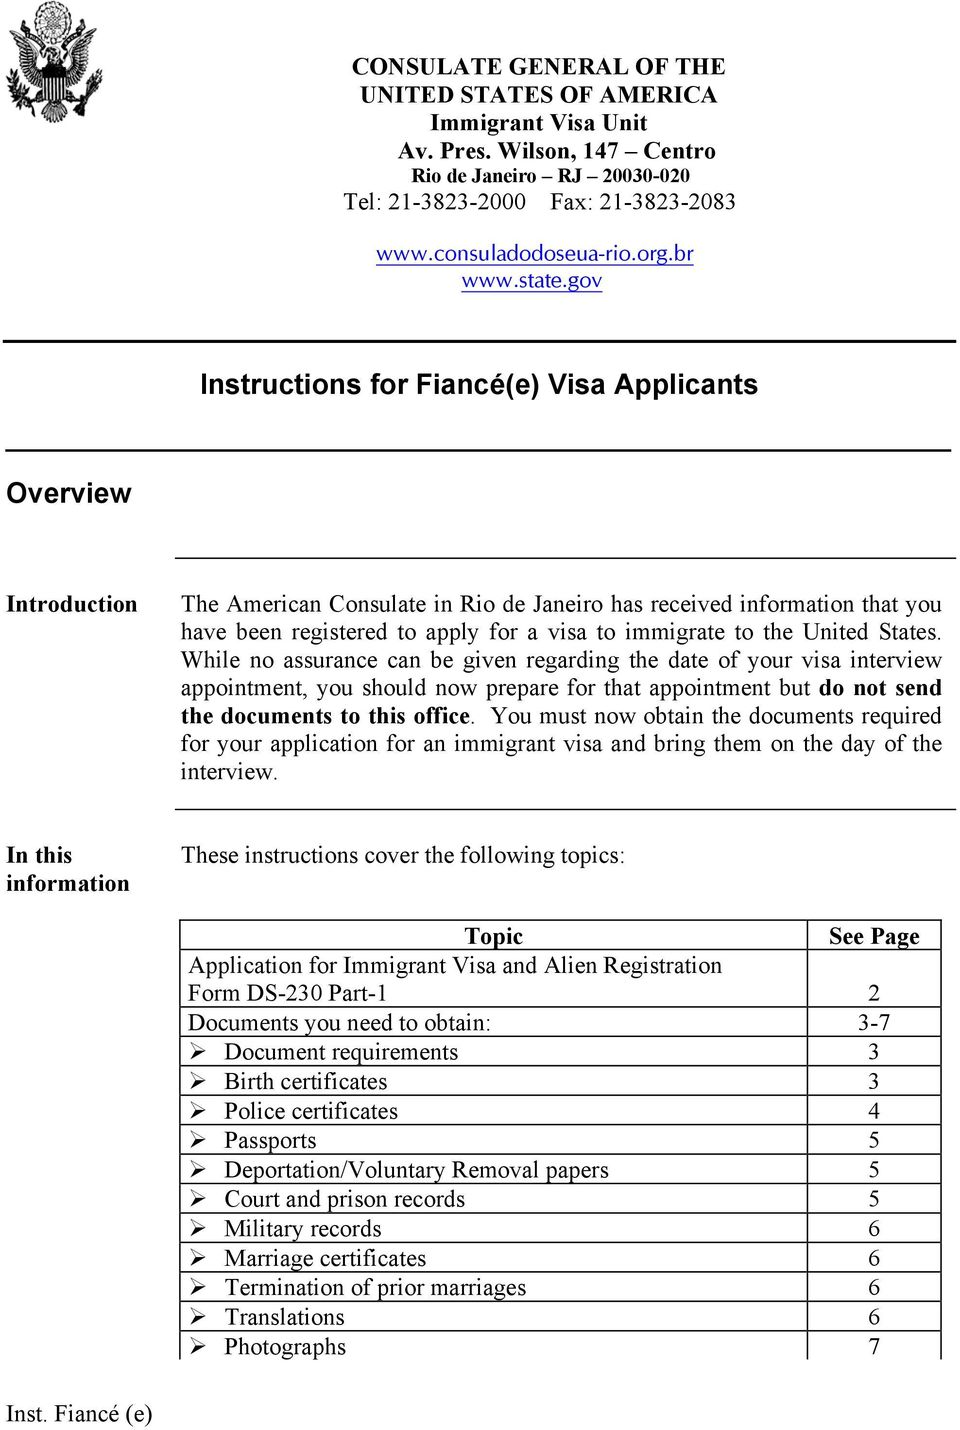 Us Immigrant Visa Application Form Ds 230 Powermall